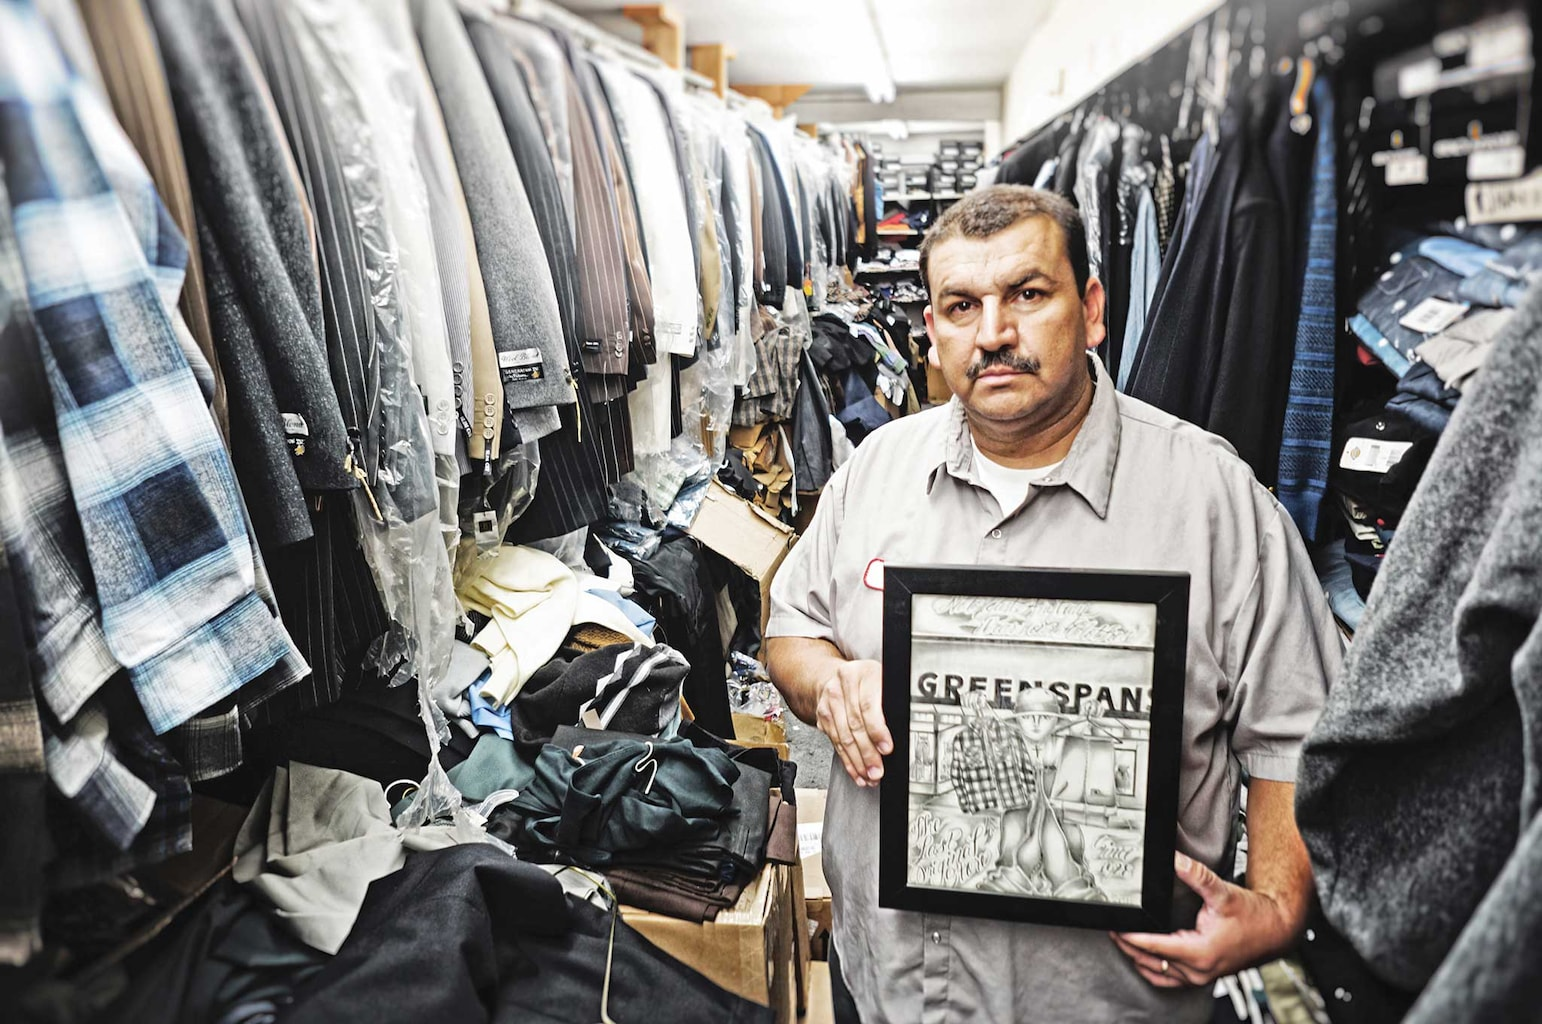 Raul is a longtime customer who has been shopping with Greenspan's since he was a kid. He's seen here standing besides some artwork he contributed to Evan for a special shop collaboration tee.